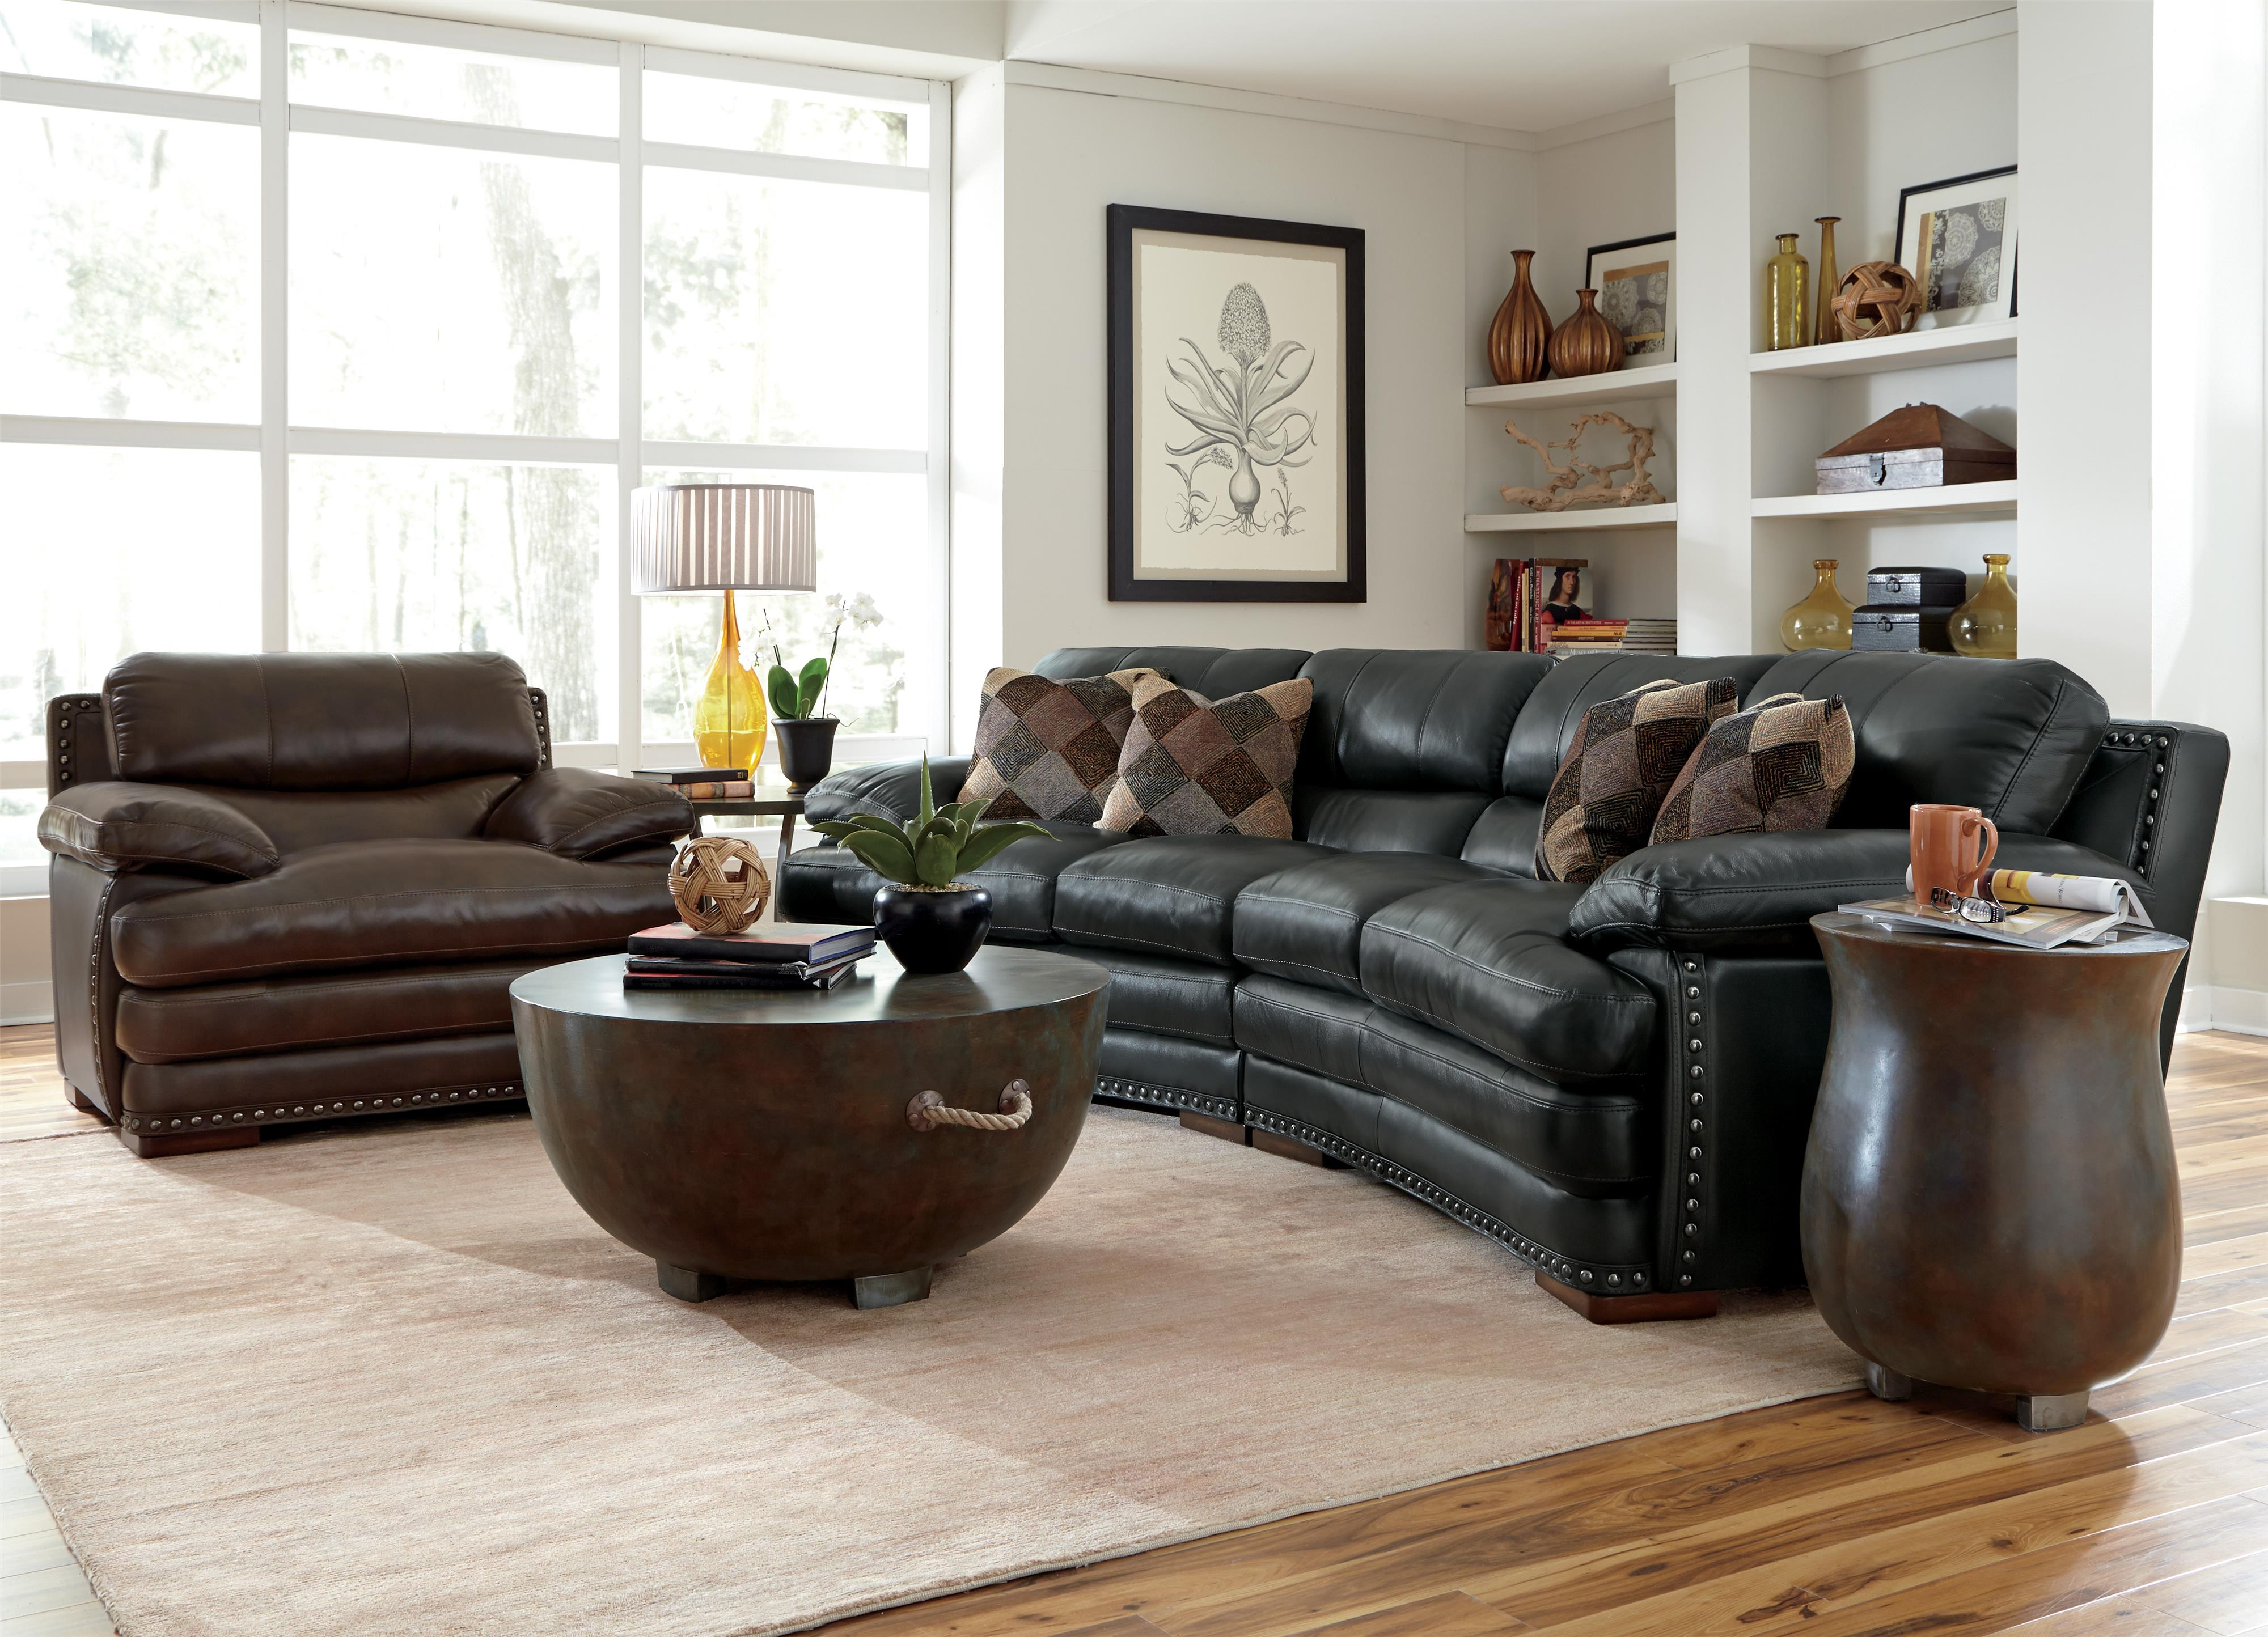 Flexsteel Latitudes - Dylan Leather Conversation Sofa with Nailhead Trim - Wayside Furniture - Conversation Sofas & Flexsteel Latitudes - Dylan Leather Conversation Sofa with ... islam-shia.org